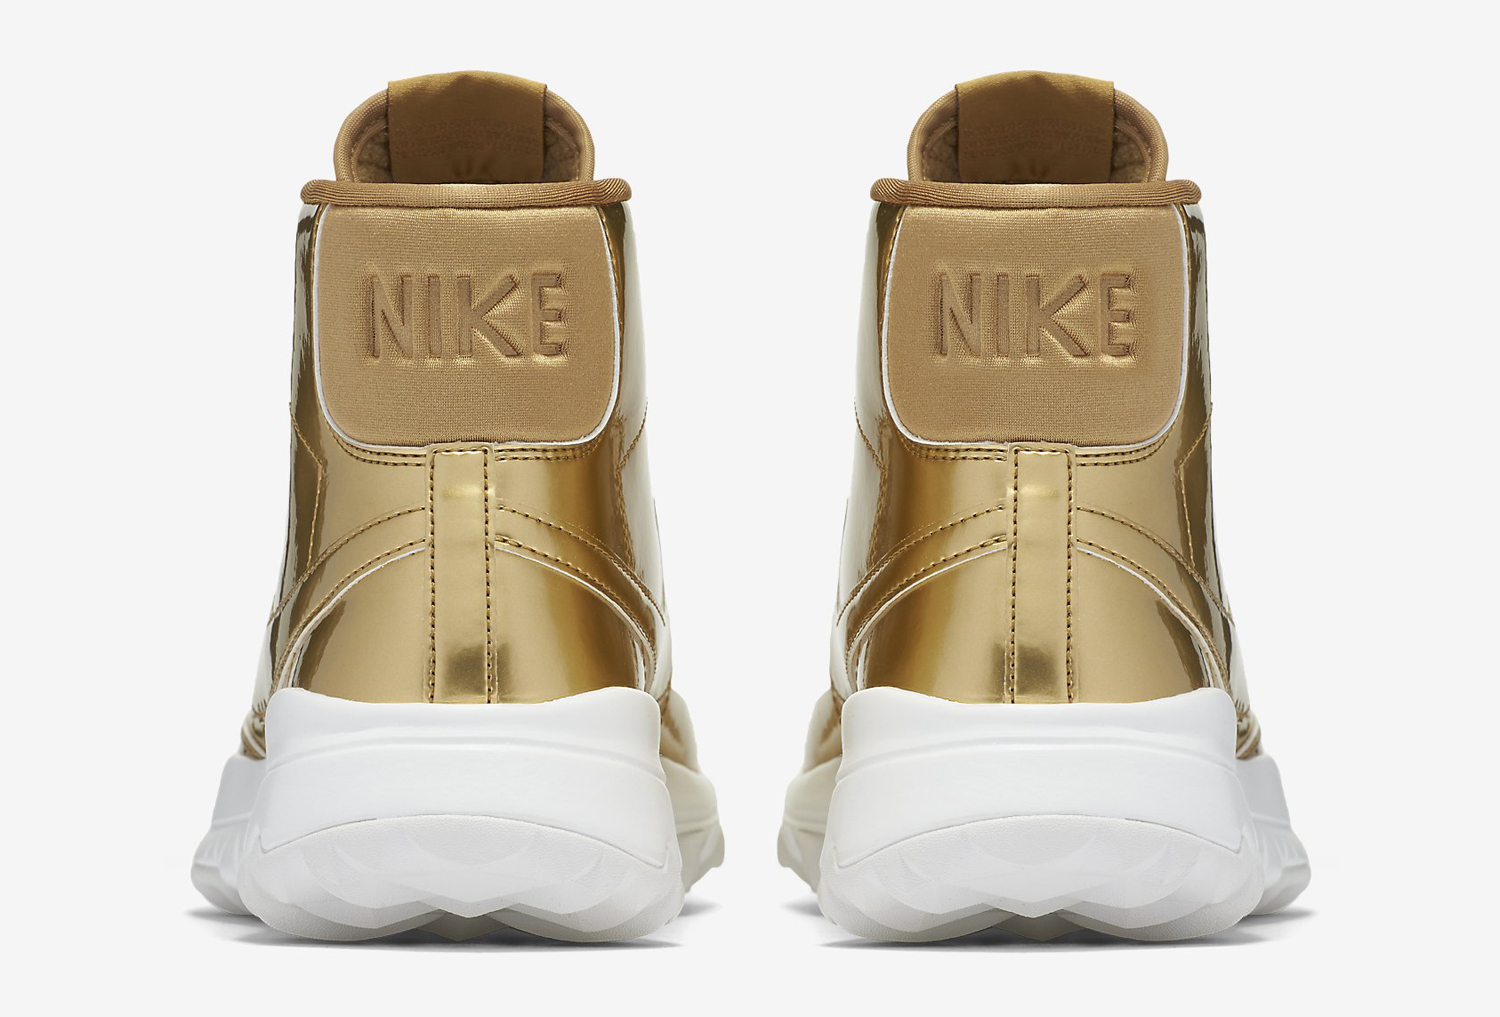 nike golf shoes gold